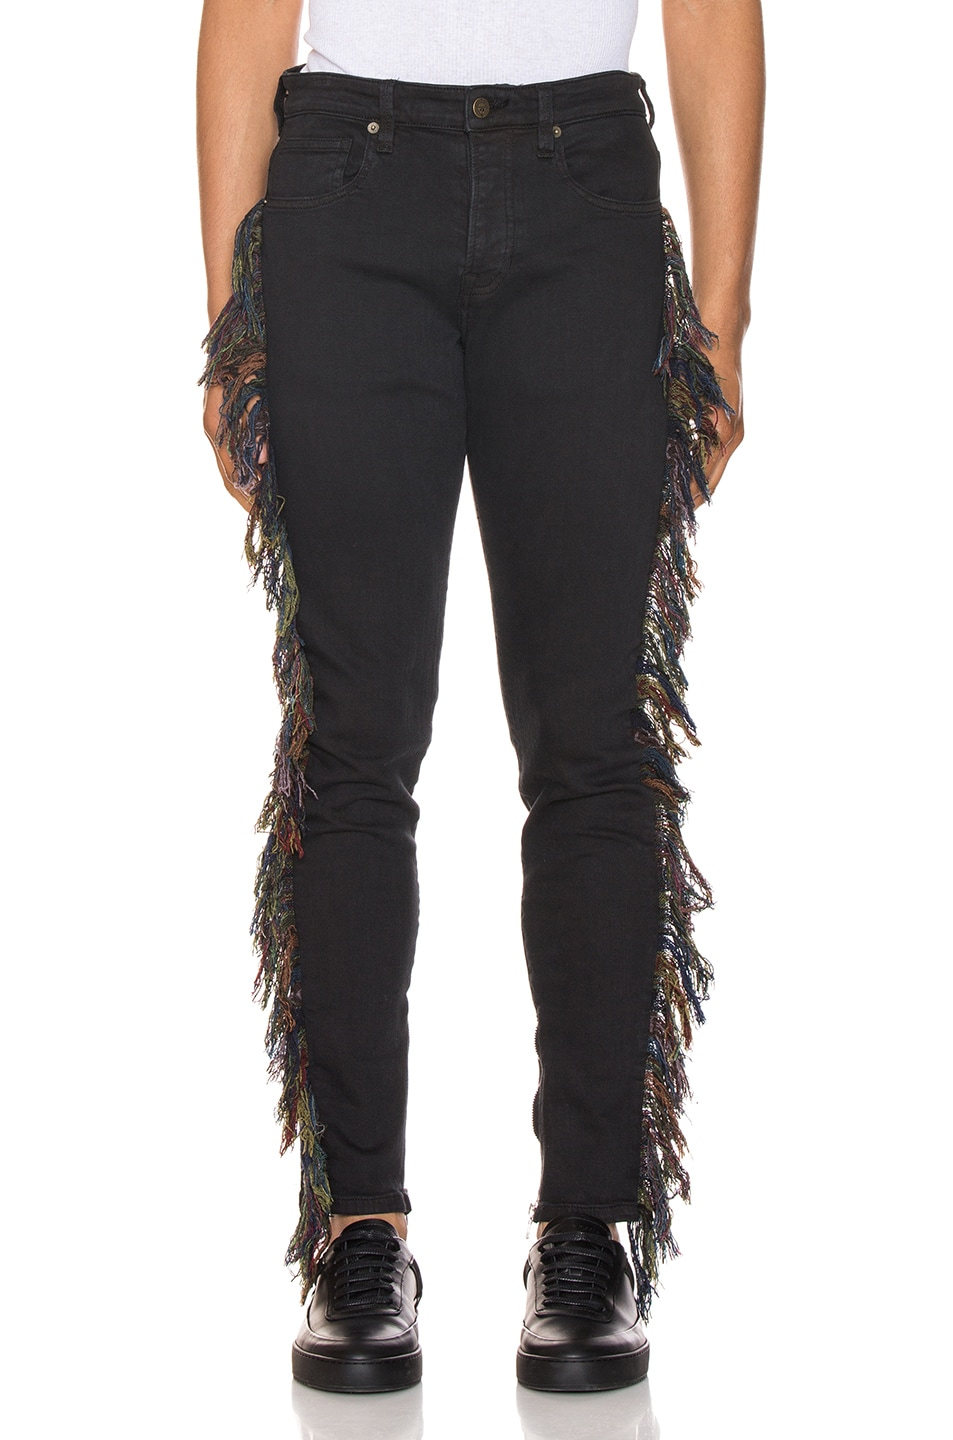 Image 1 of Alchemist x Guess Fringe Jeans in Black